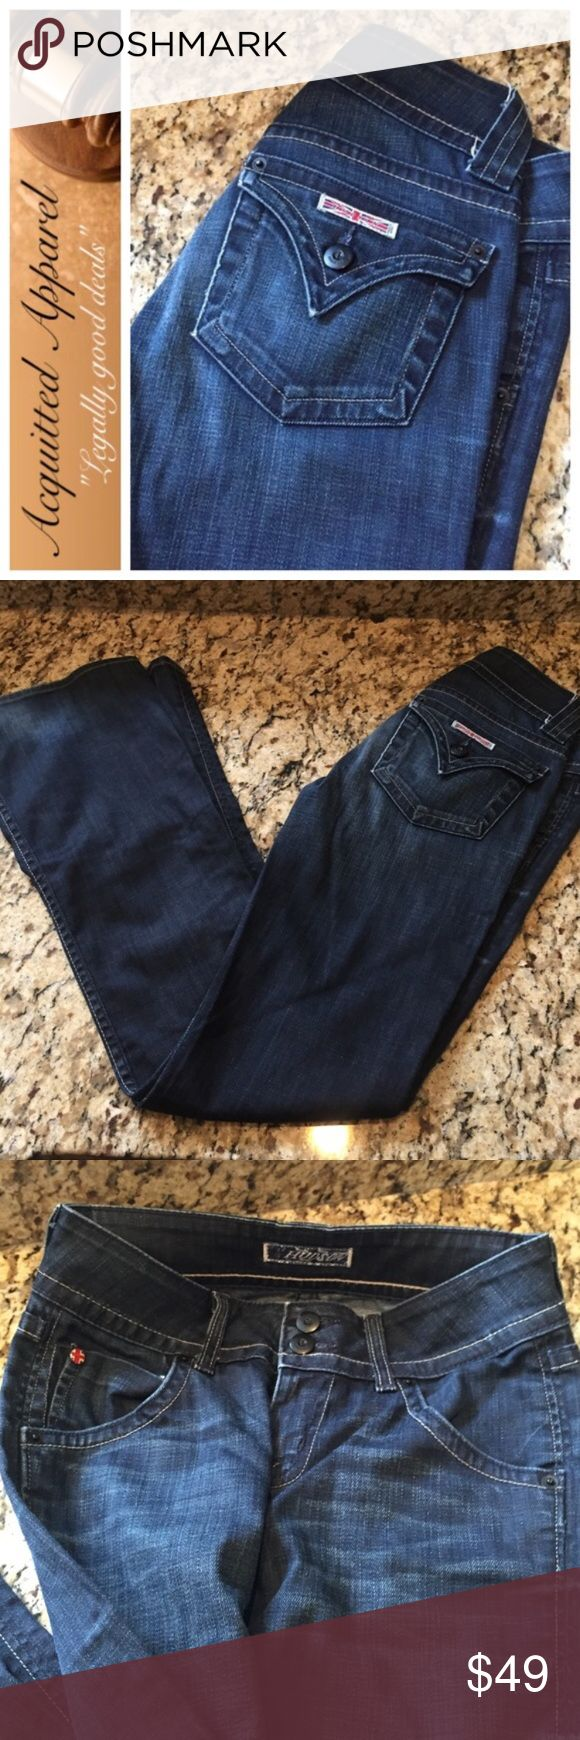 "[Hudson] Jeans Classic Flare Leg Jeans 32.5 Inseam Excellent condition. Minimal wear. Super cute dark wash. Flare leg. Classic pocket. Approx 32.5"" inseam. Hudson Classic Pocket Jeans Hudson Jeans Jeans Flare & Wide Leg"